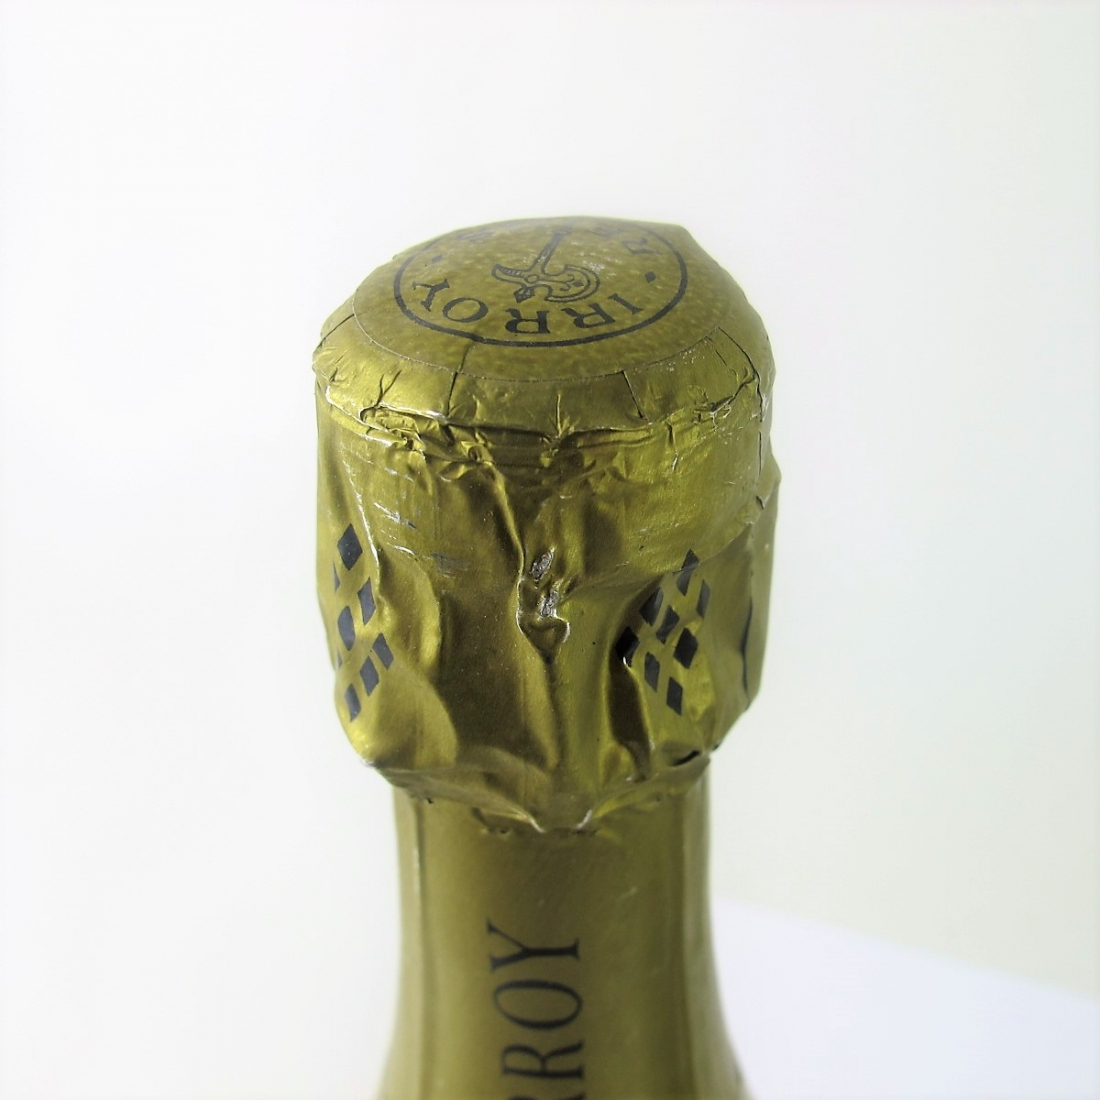 Irroy Brut NV Champagne 2x77cl / Wooden Box